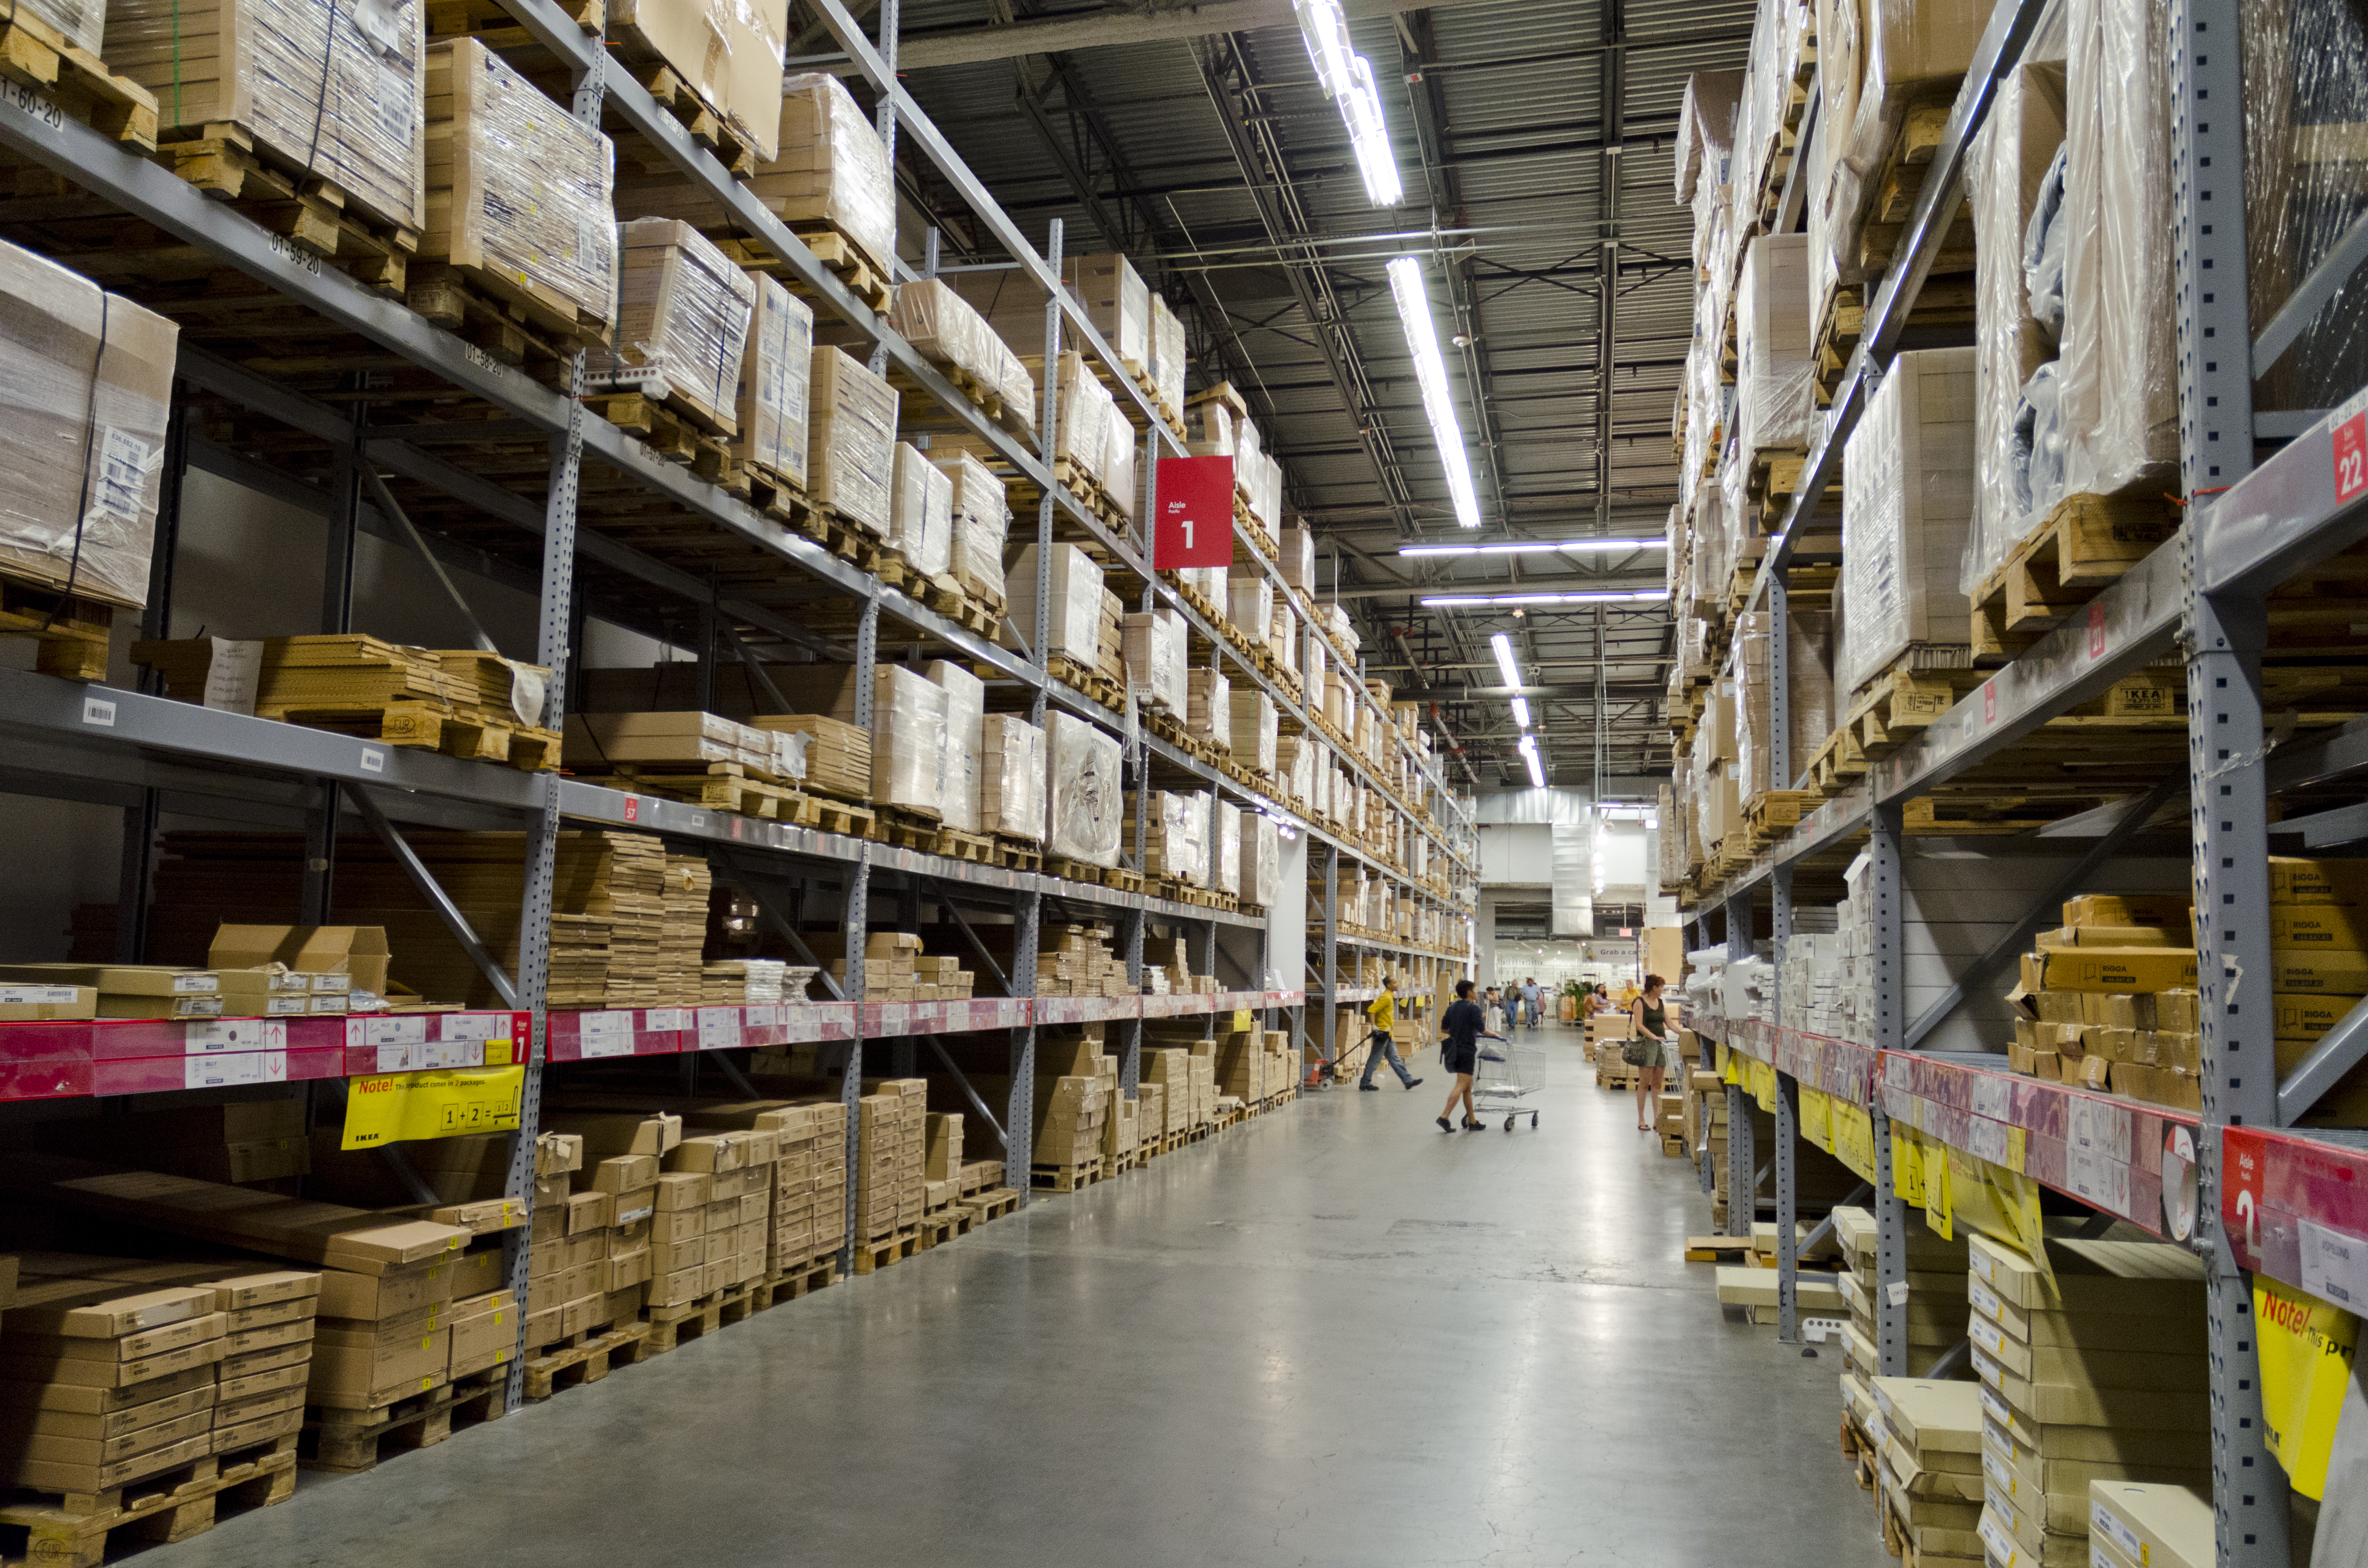 highland commercial equipment rentals used warehouse shelving and we offer the best shelving client logistics in las vegas